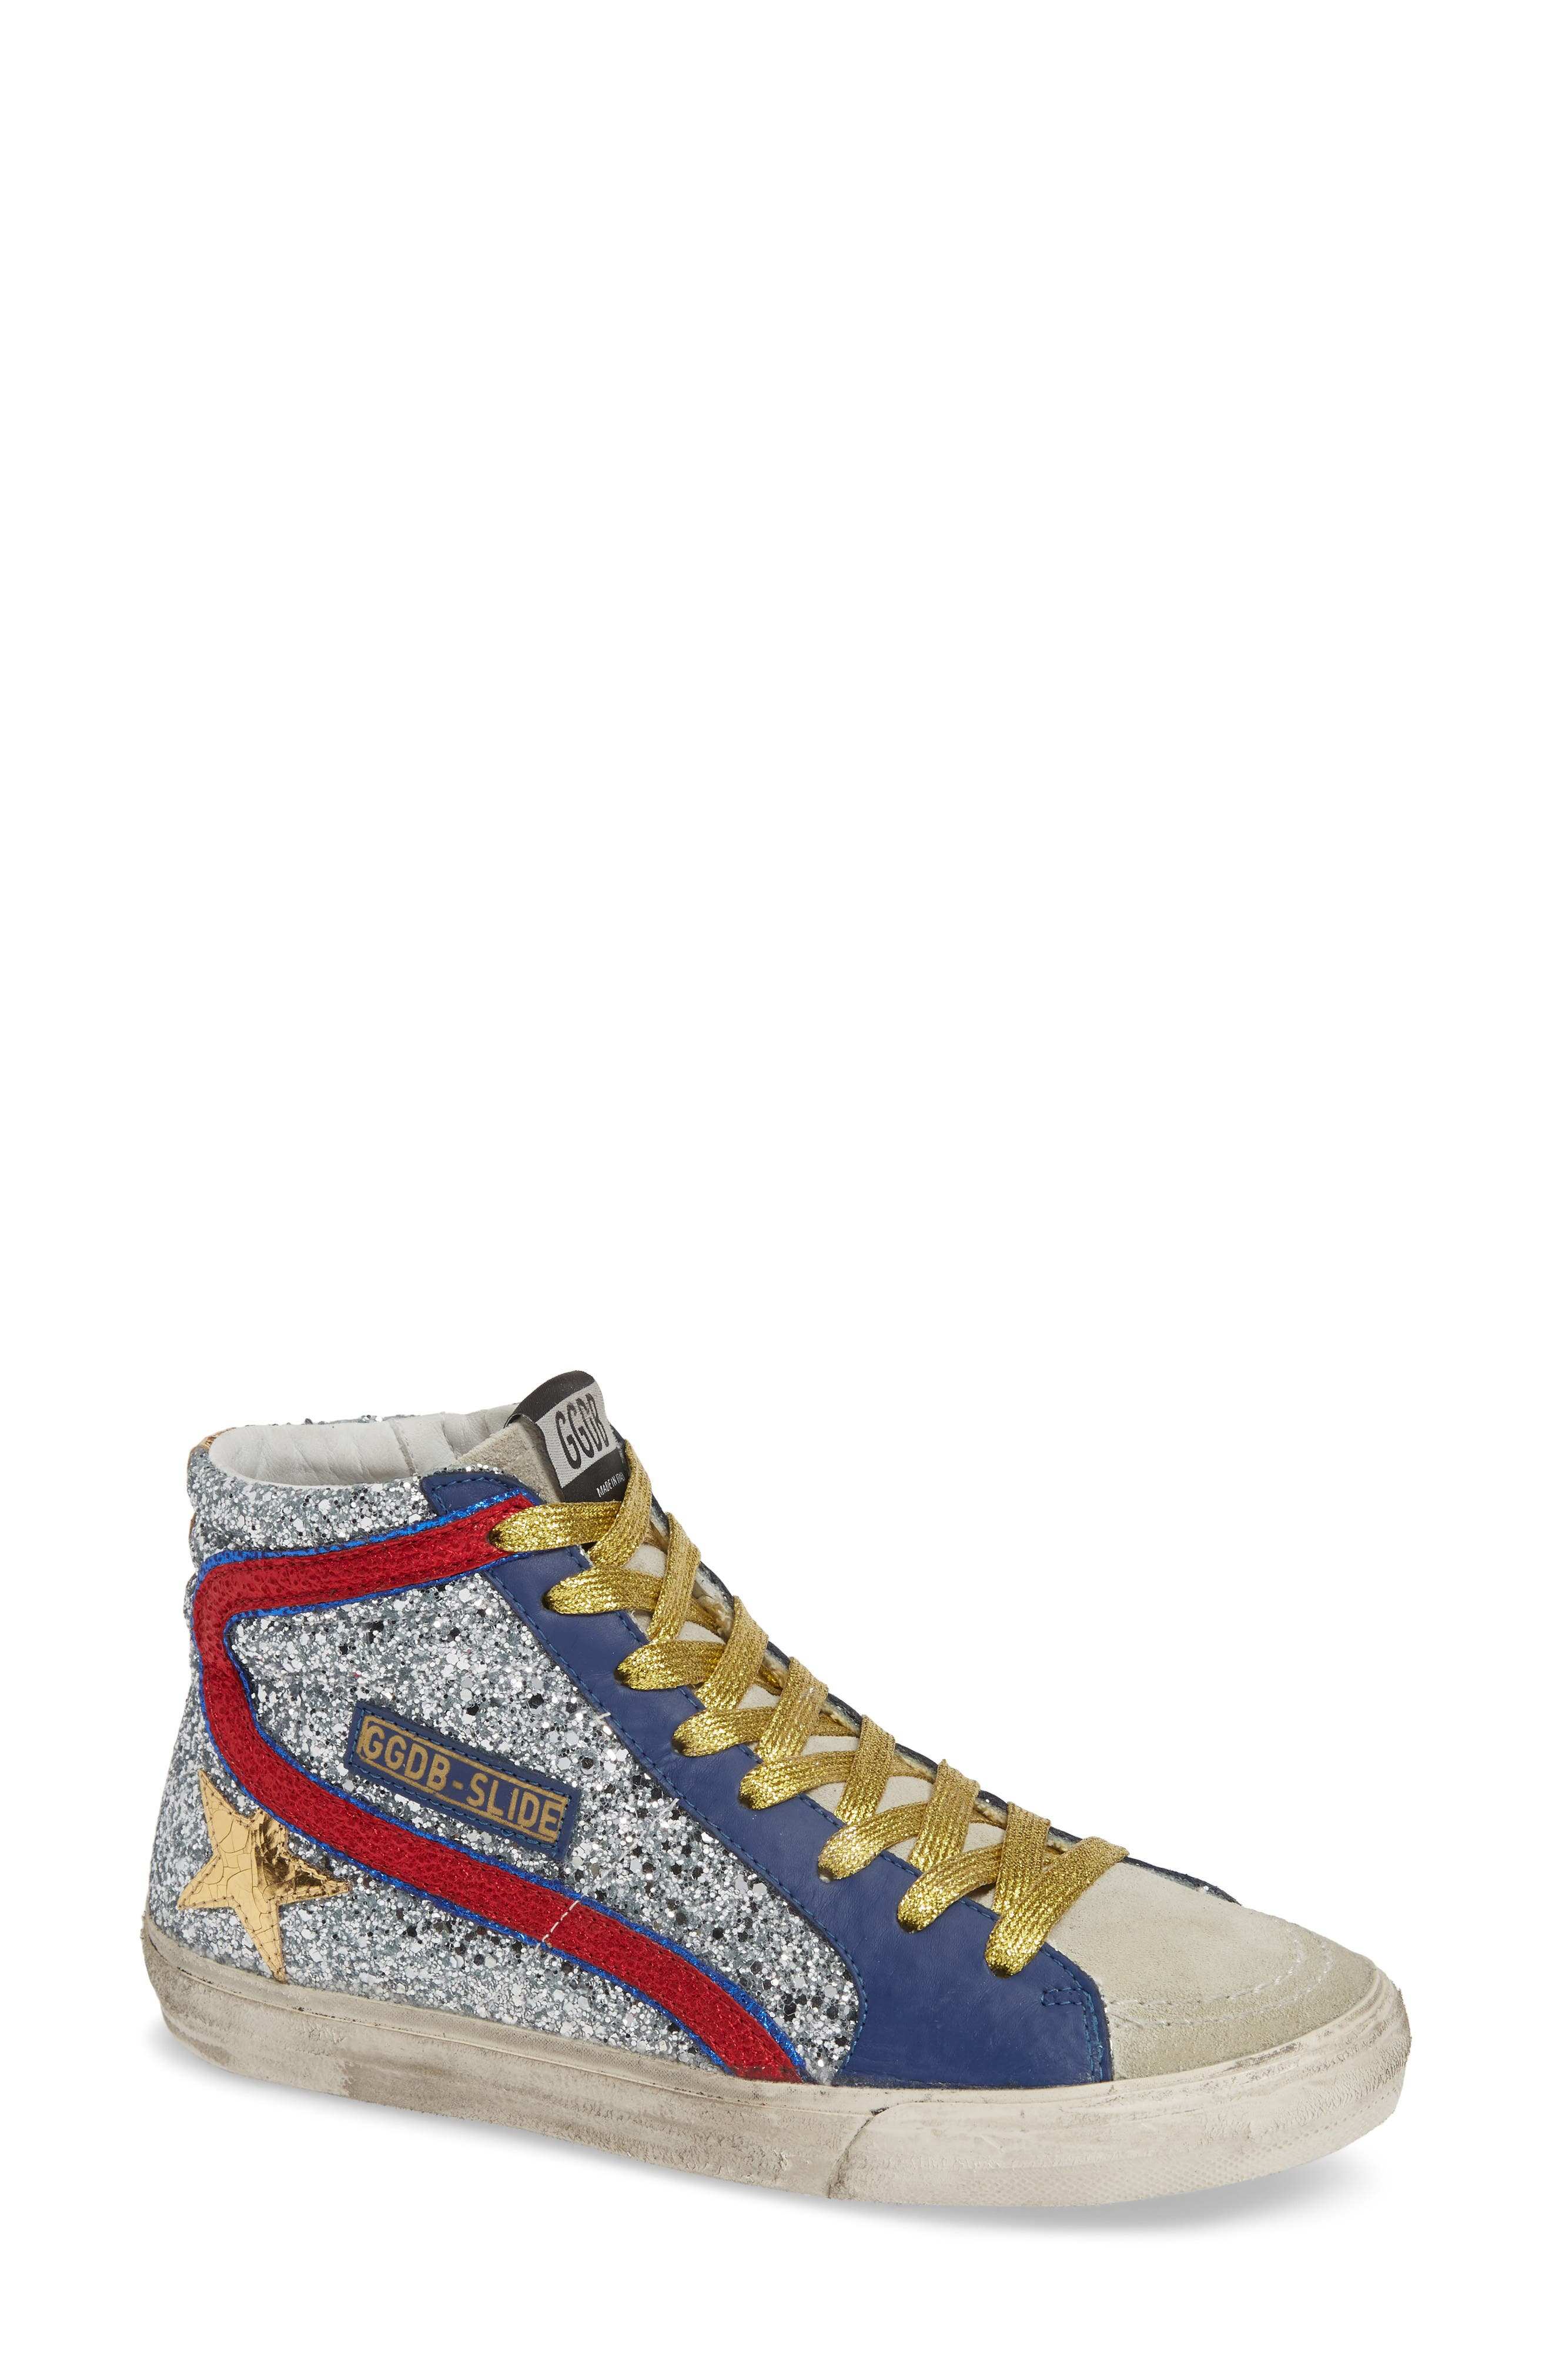 Slide Glitter High Top Sneaker,                             Main thumbnail 1, color,                             SILVER/ RED/ GOLD